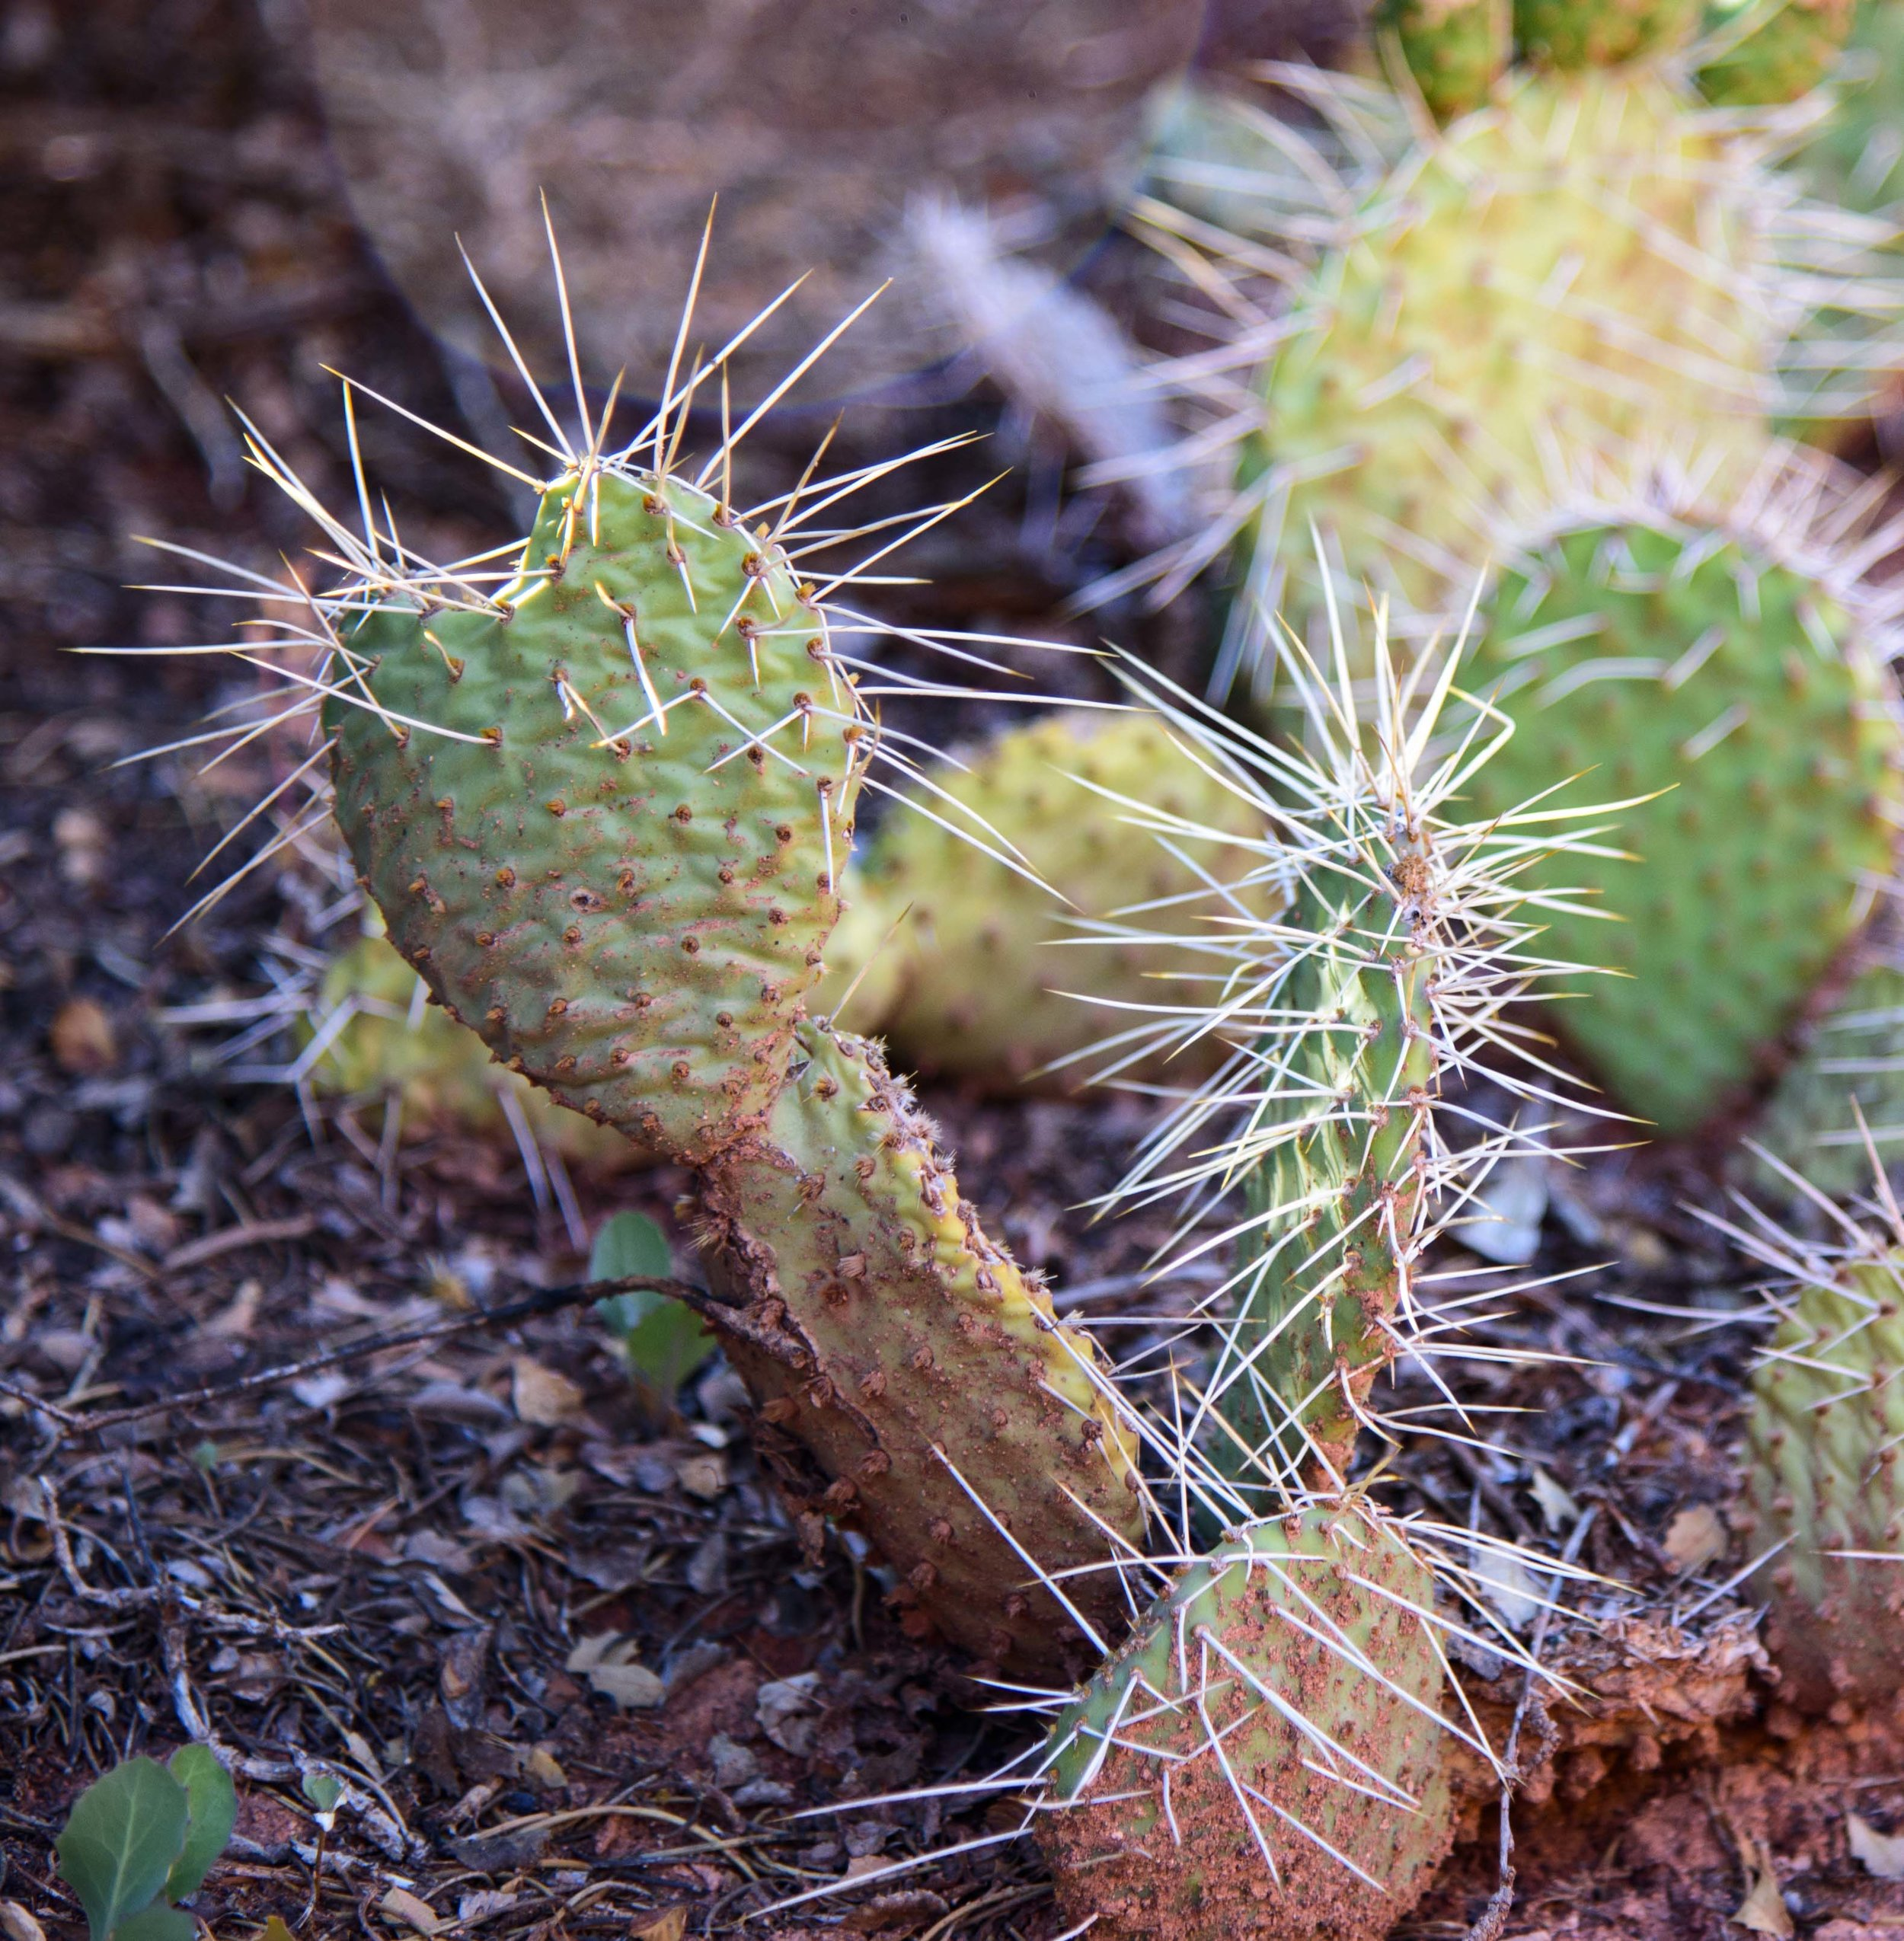 Embrace the heart, even when it is guarded and prickly